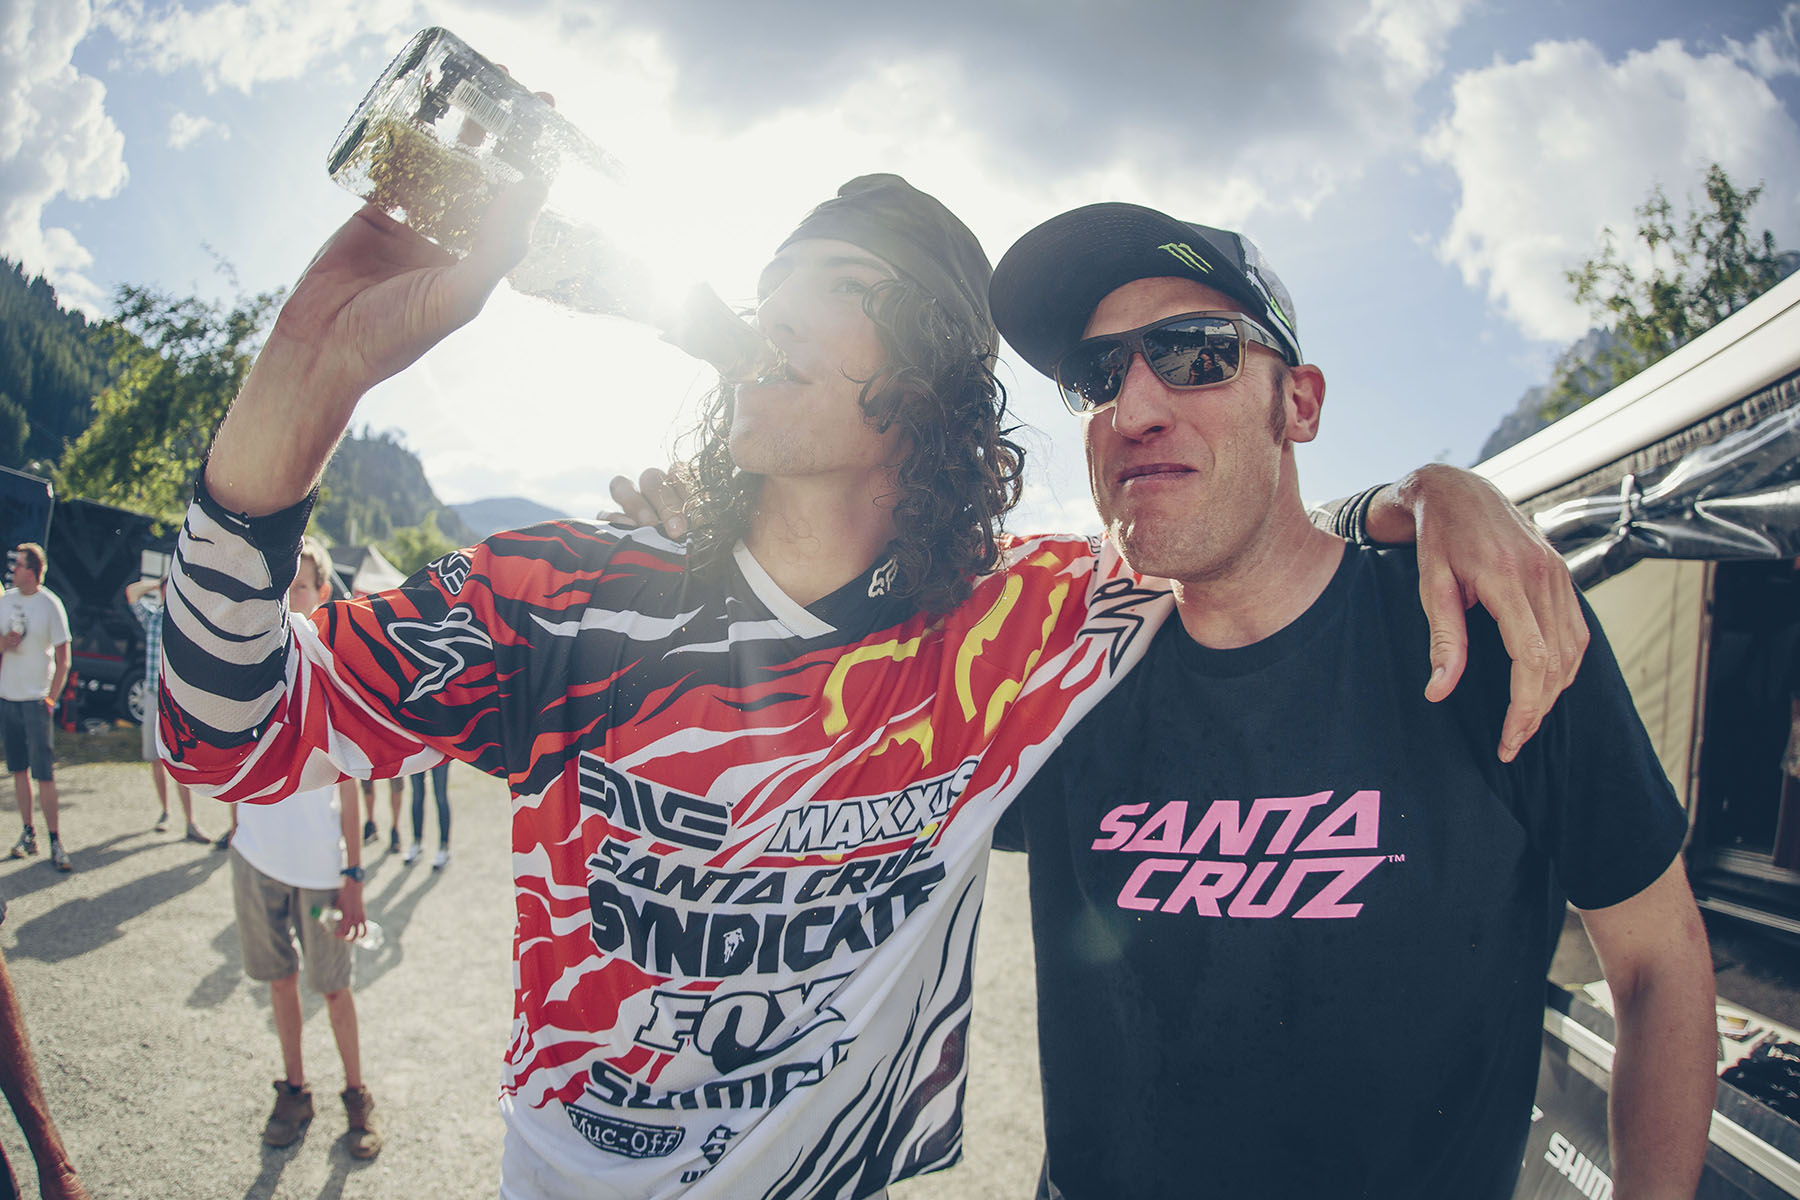 Steve Peat, although didn't personally score the result he wanted today, but made history today with Josh's win and Greg's 2nd. A longtime coming for both of these guys, Steve Peat is over the moon for him.